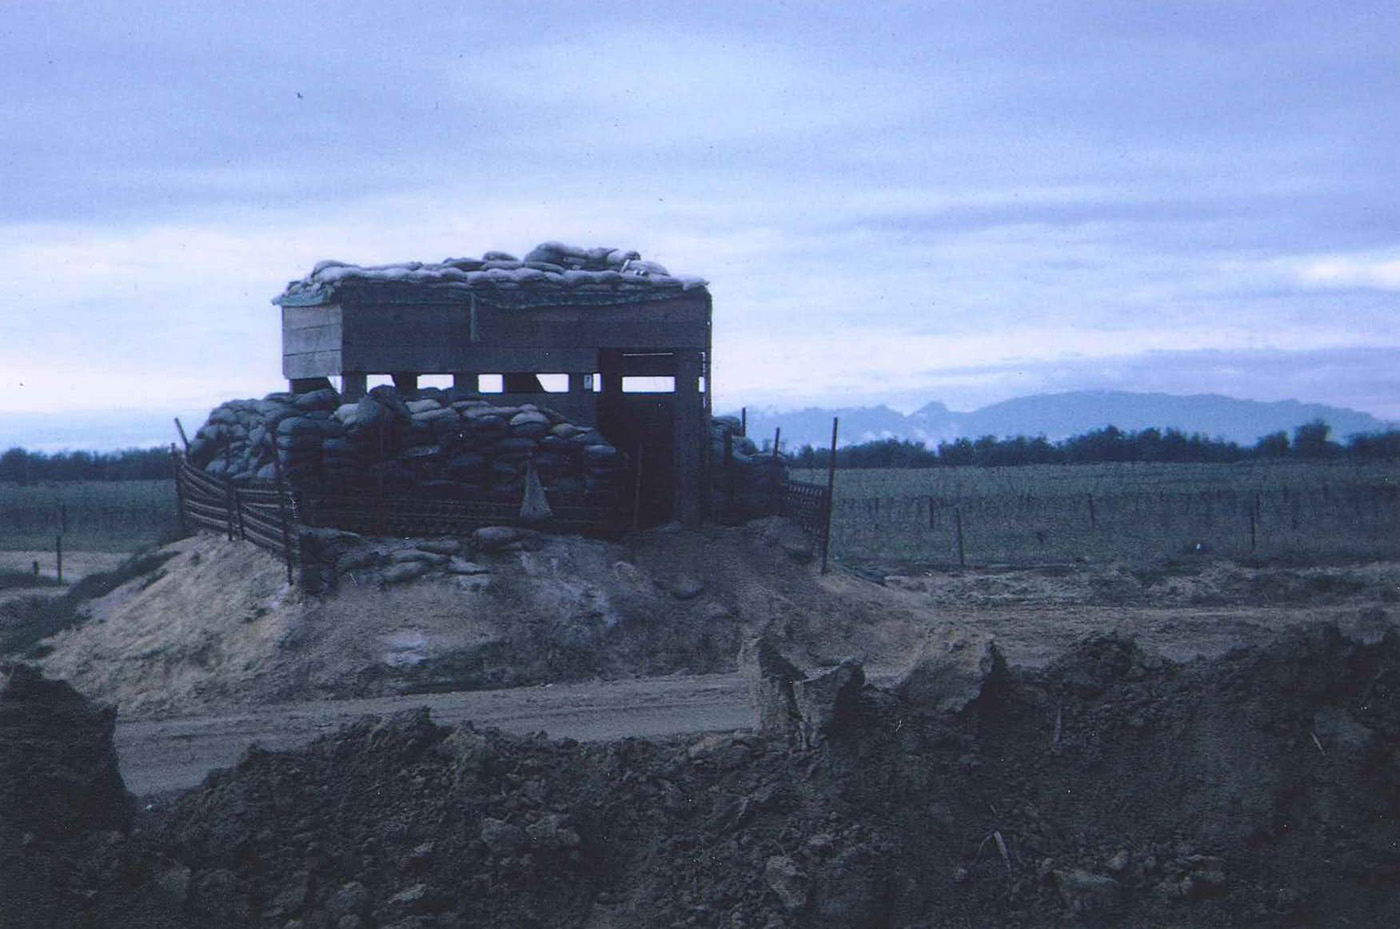 Perimeter bunker facing south at An Loc 1967